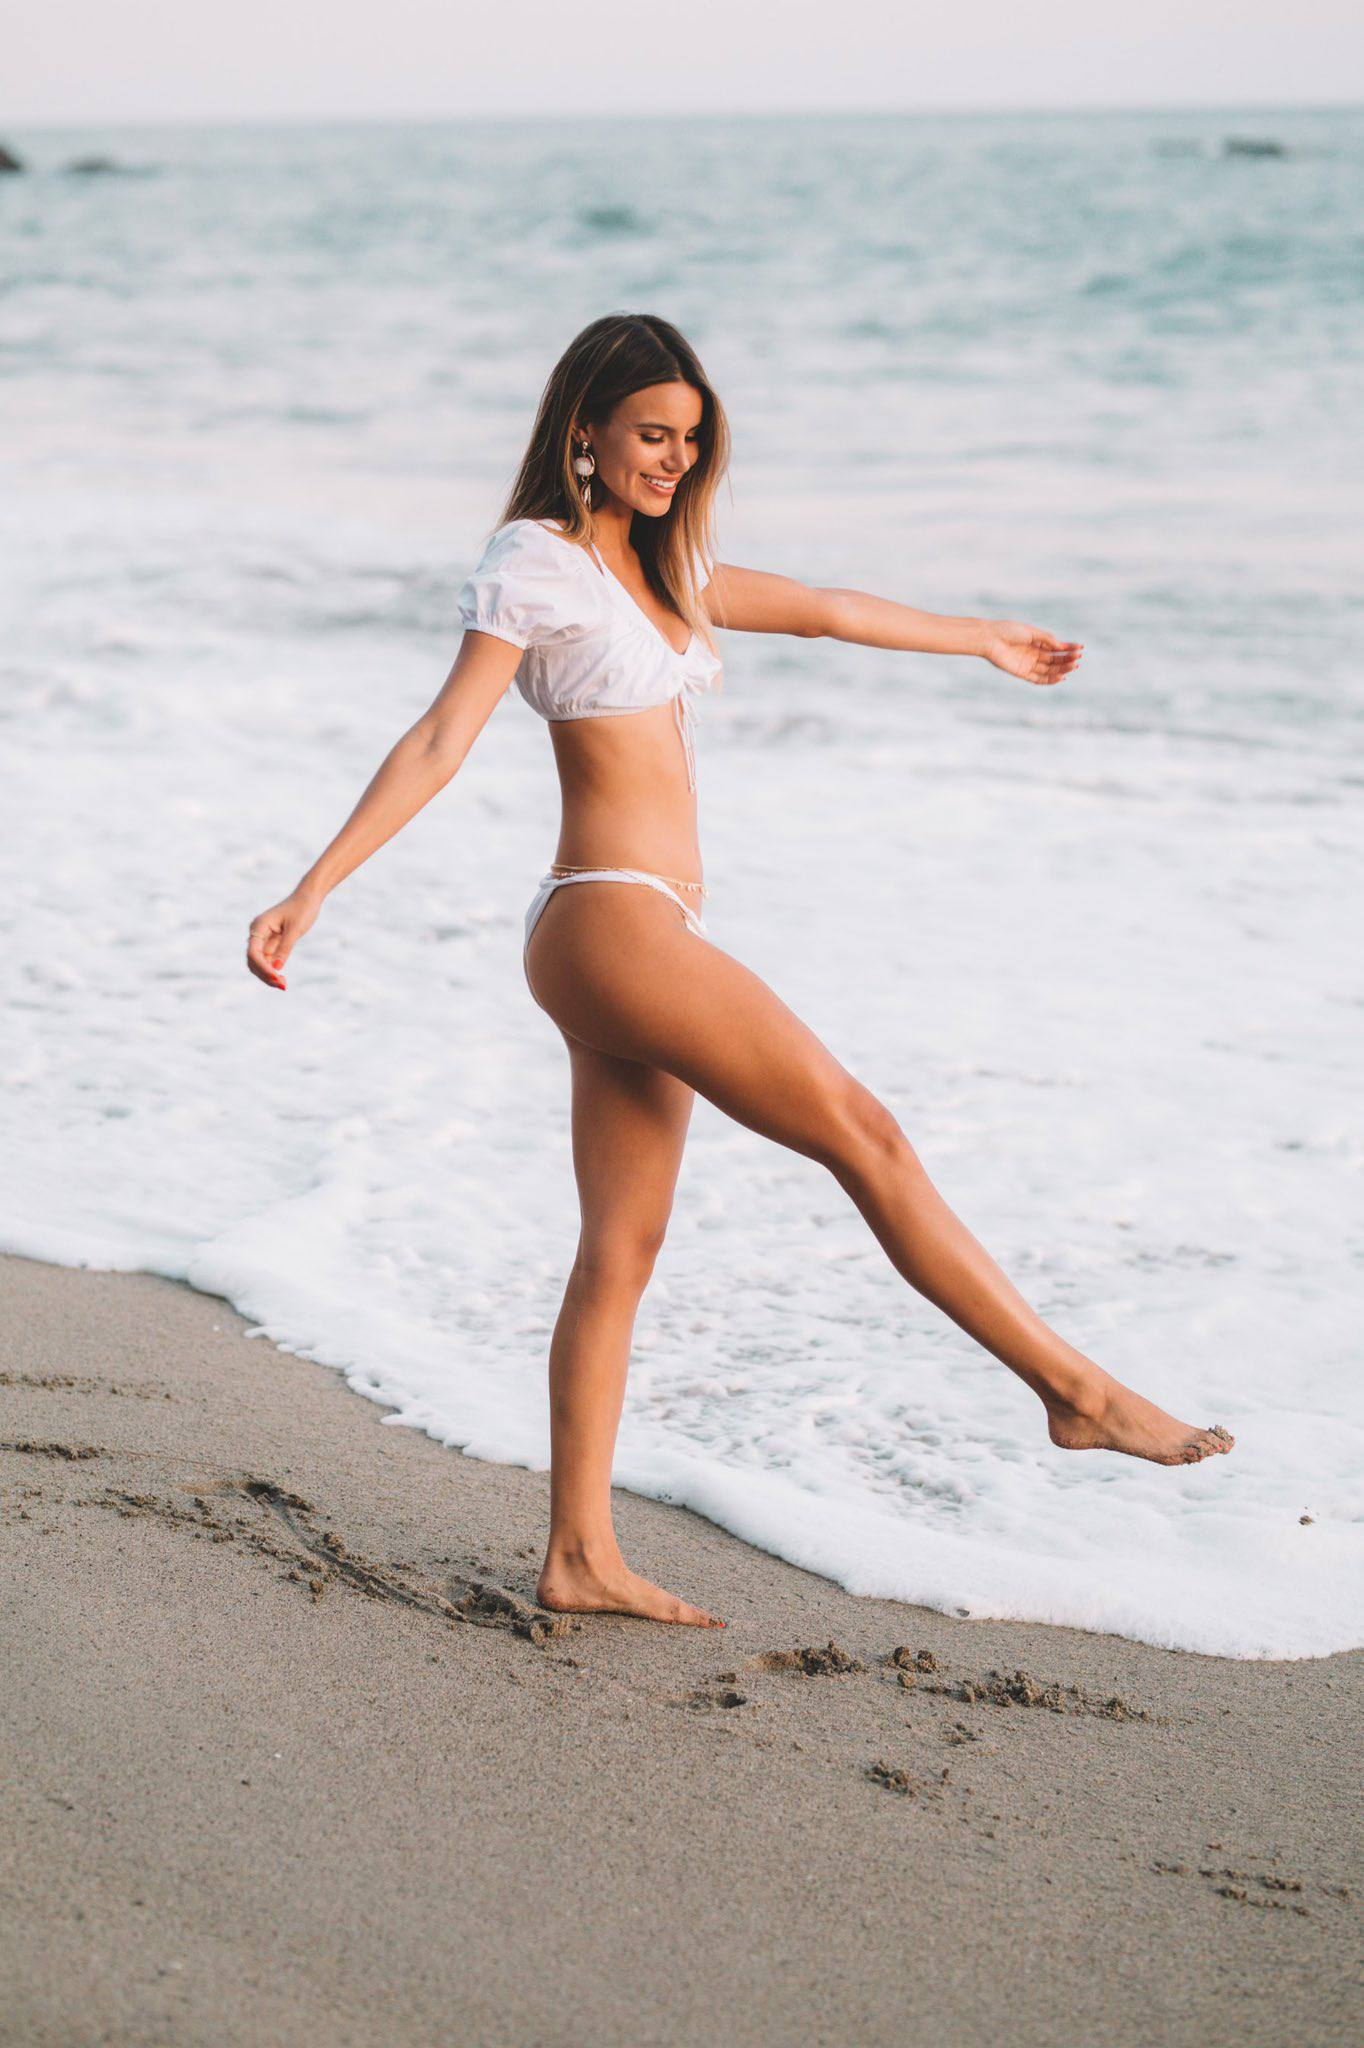 Madison Reed Sexy Body In Beach Photoshoot By Daniel Poplawsky 0004